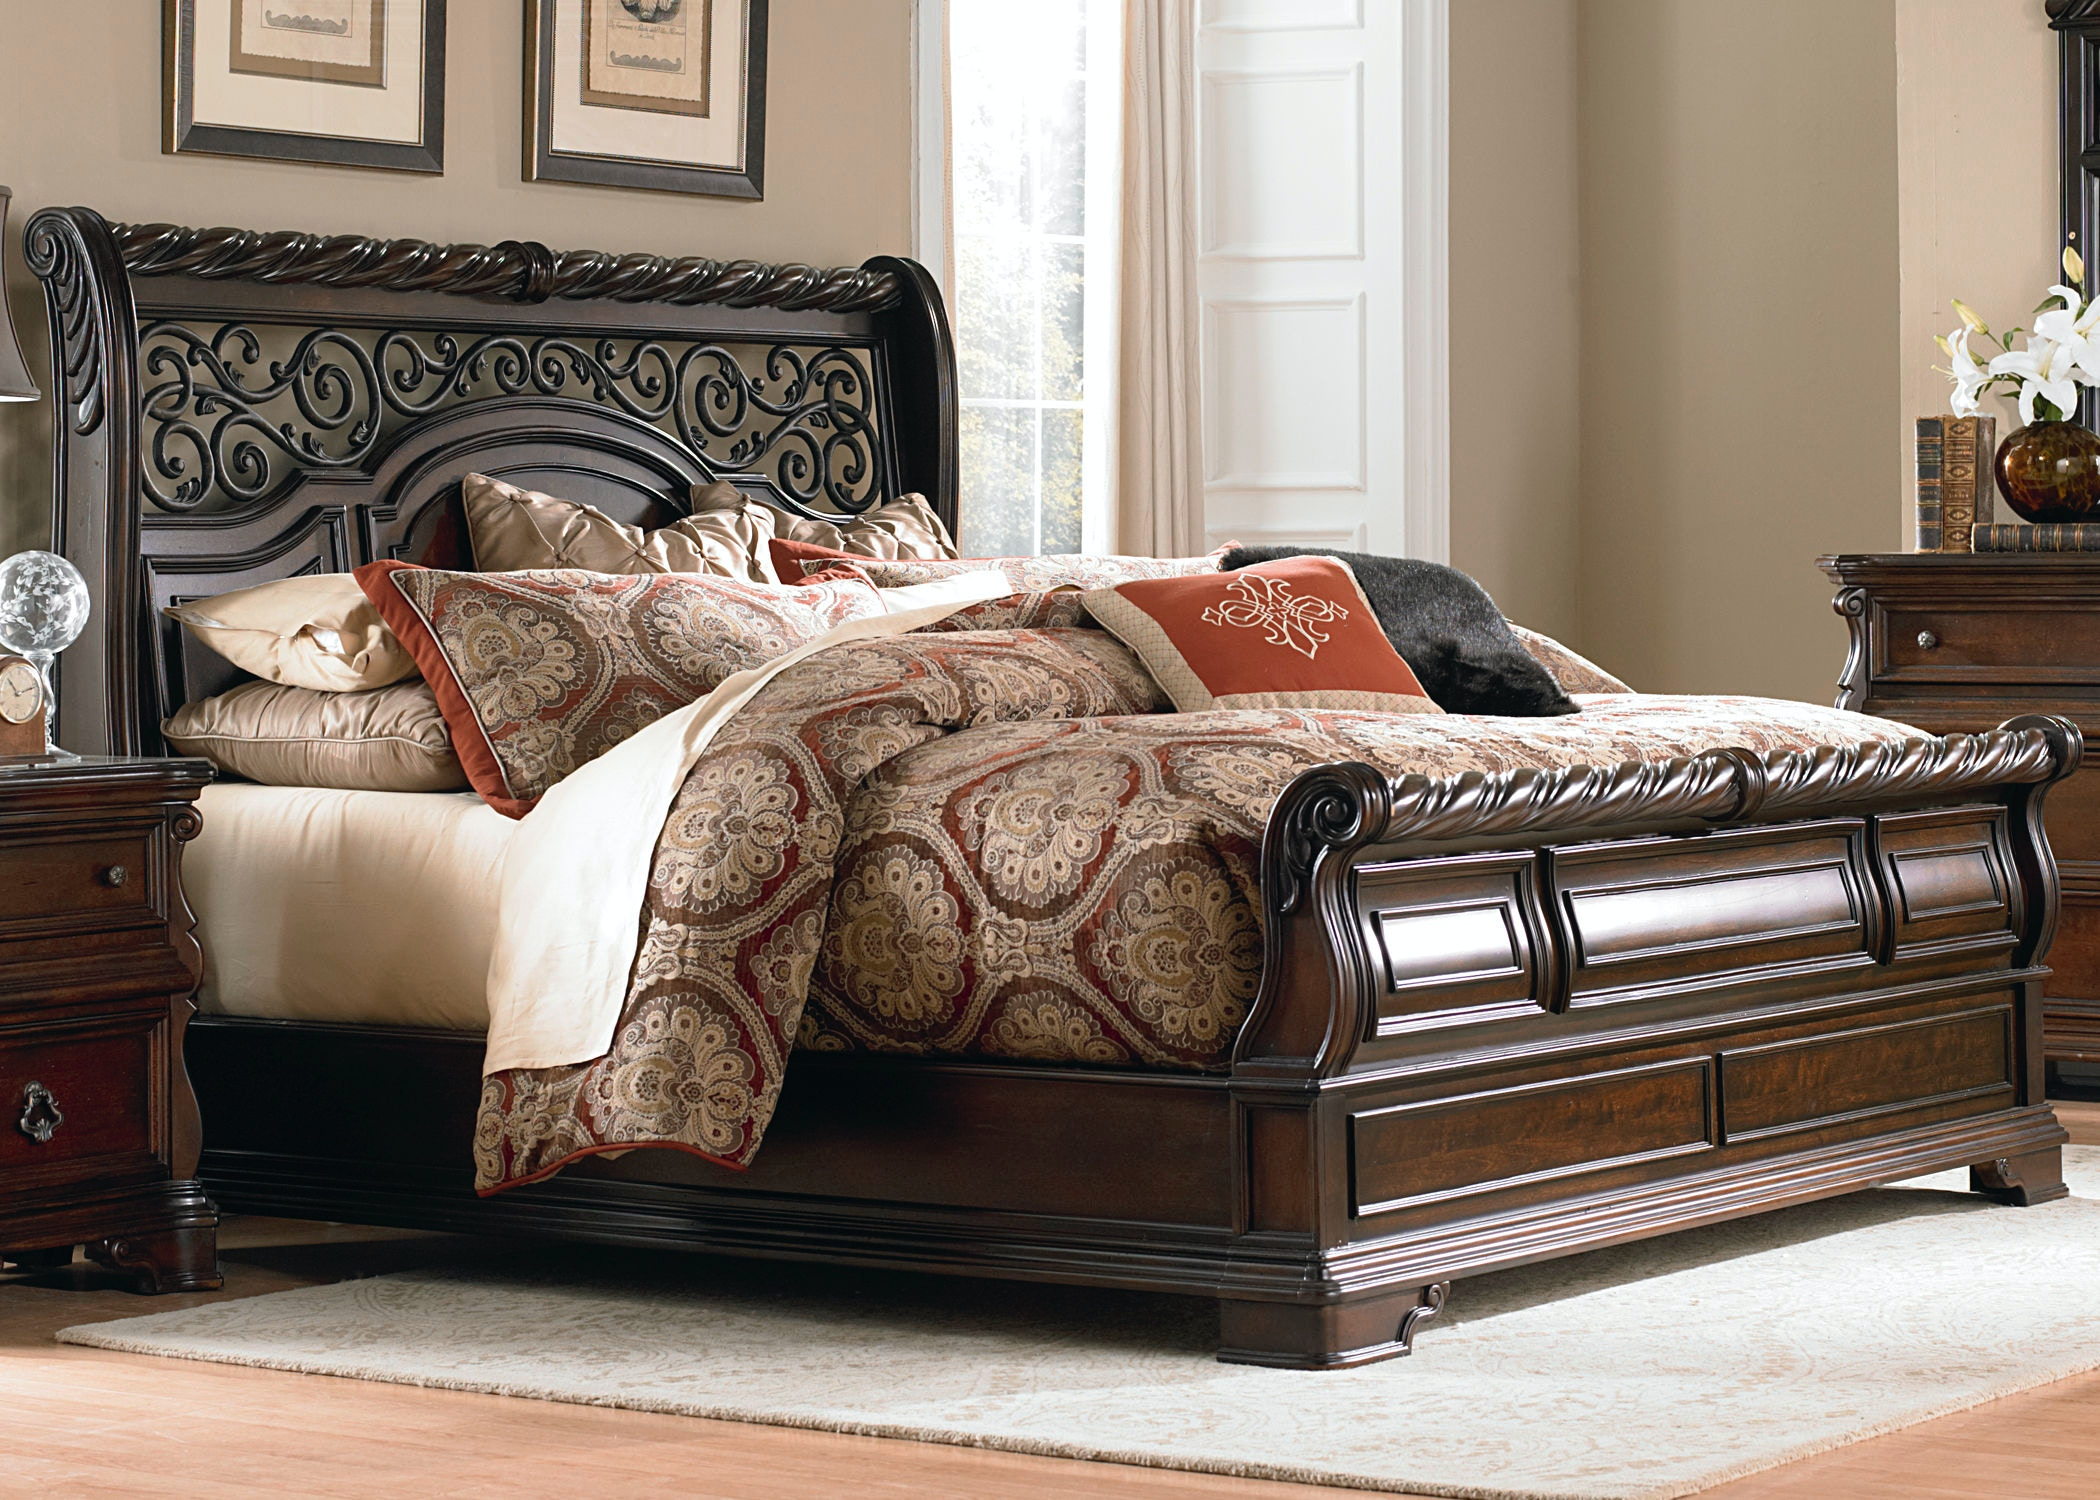 Liberty Furniture Bedroom King Sleigh Bed Frazier And Son